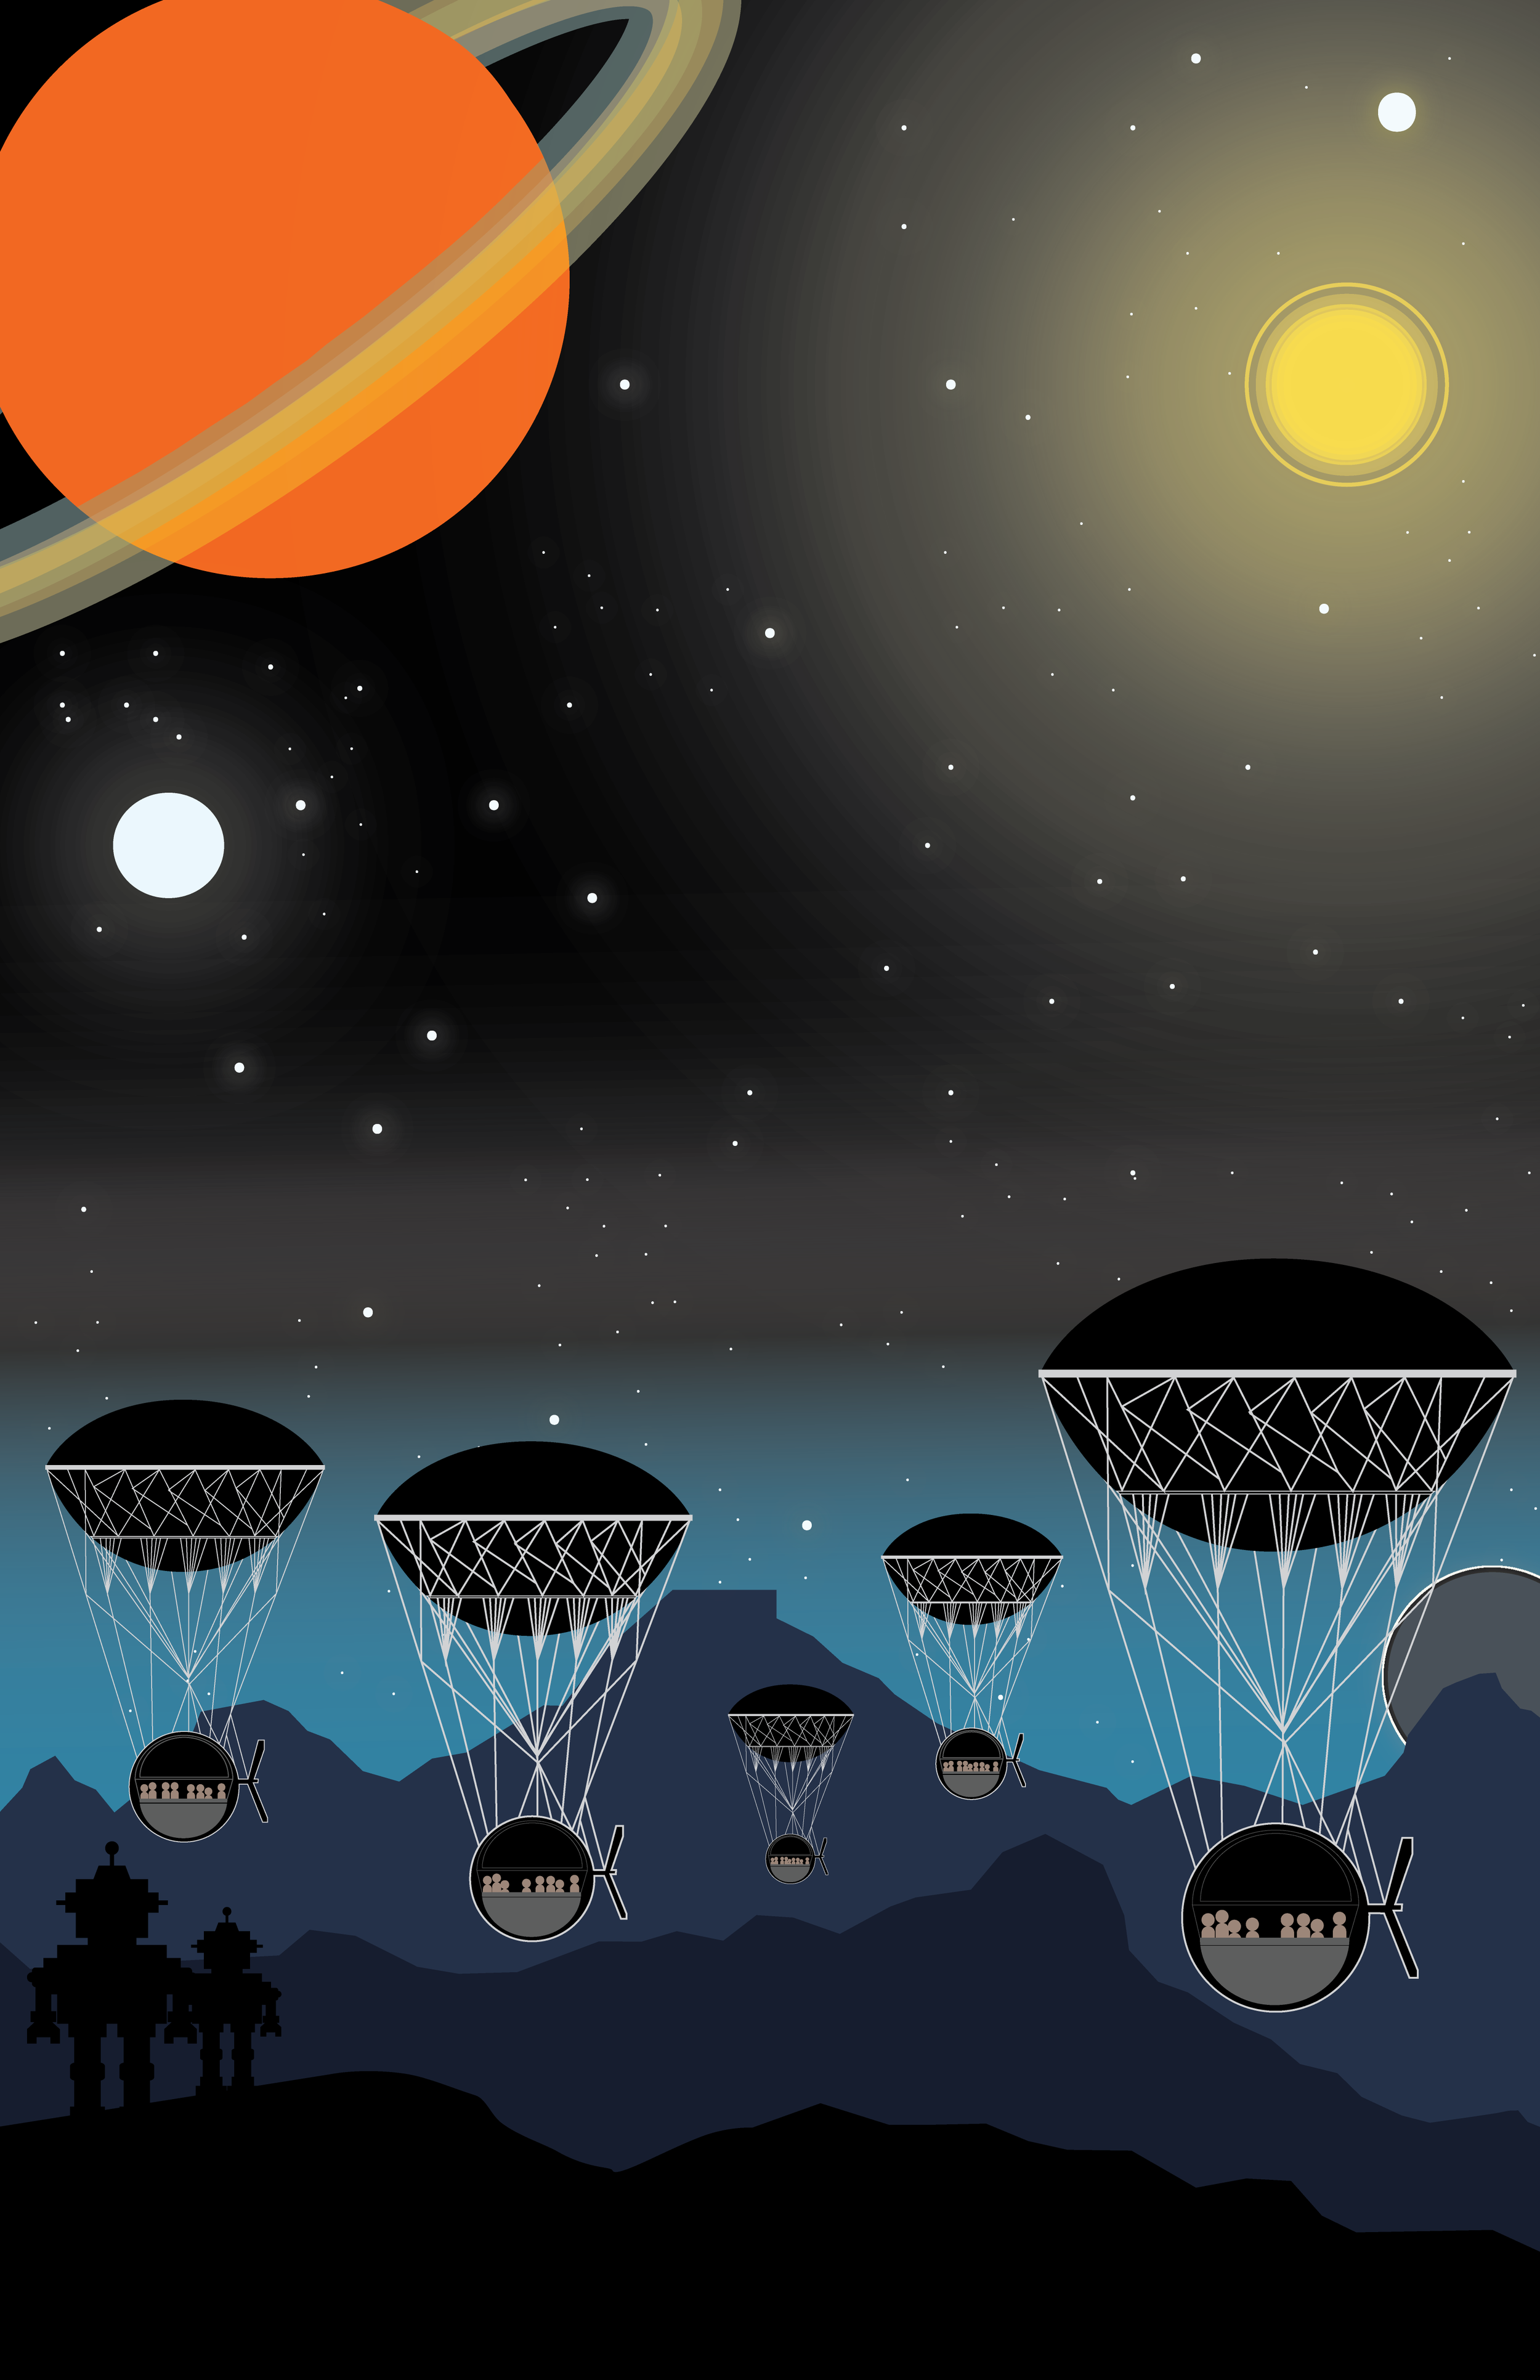 Space Travel - This depiction of futuristic space travel was my first work in the space series.